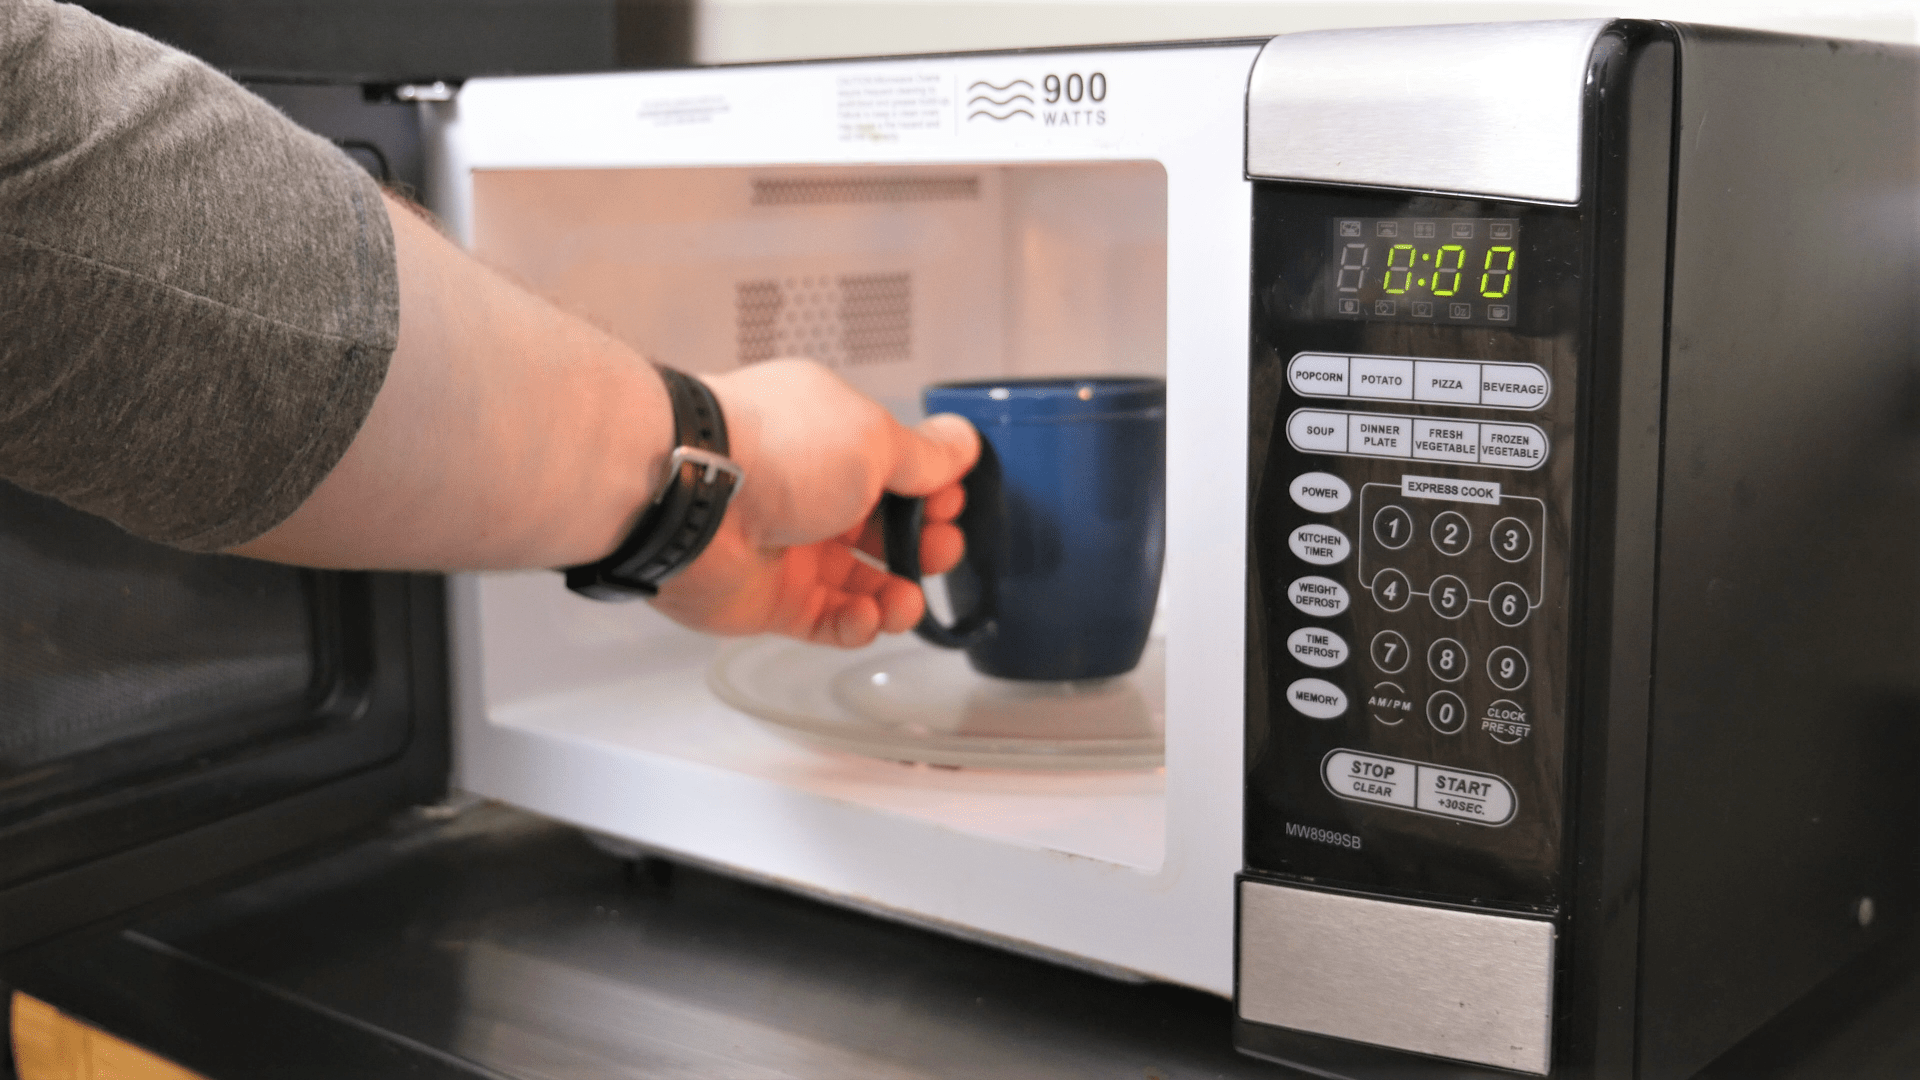 annoying beeping of your microwave